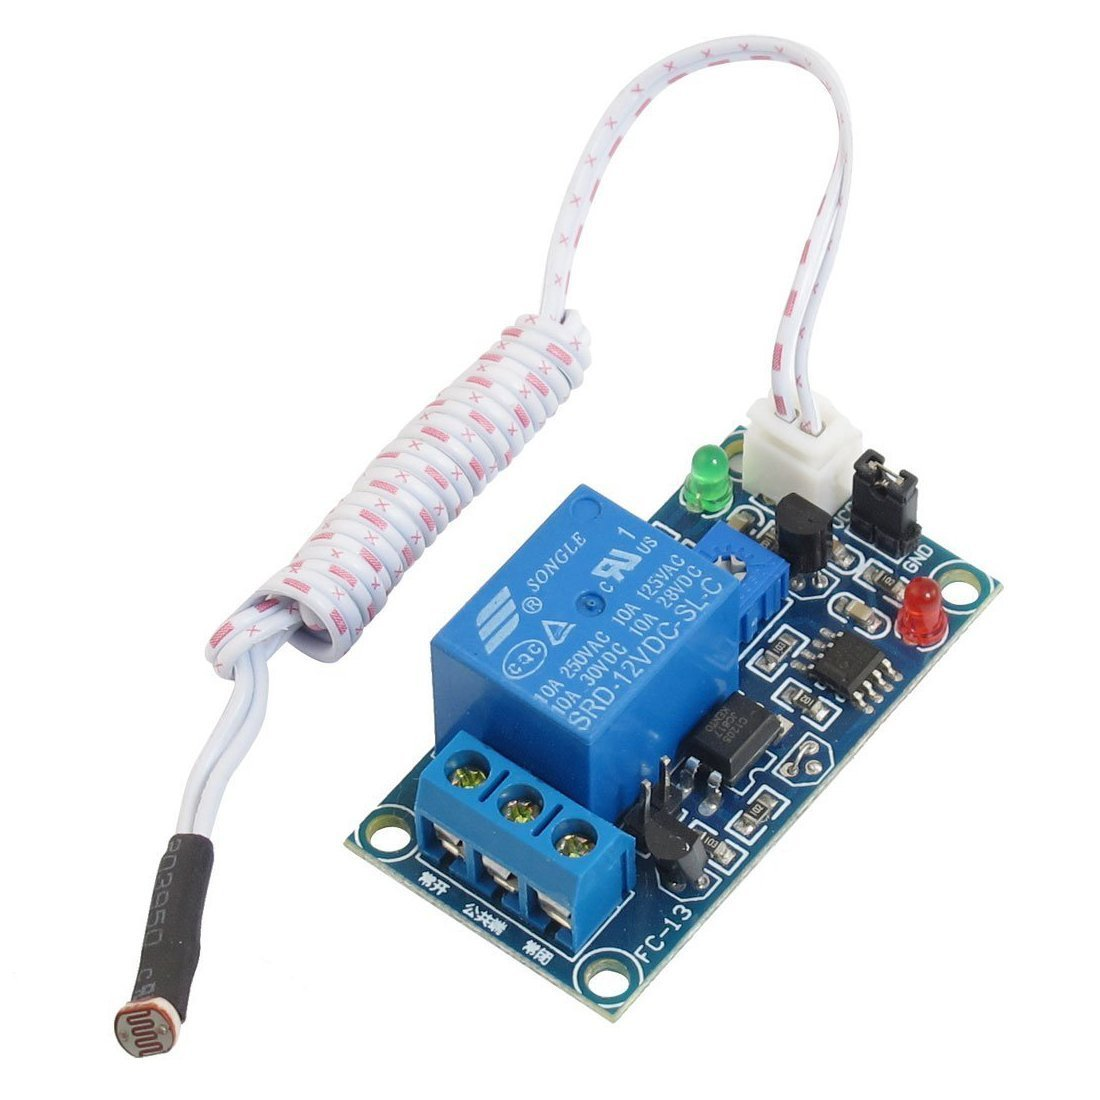 Photoelectric Switch Sensor Relay Module Toogoor Dc Economy Circuit 12v 50mmx25mm W 2 Cable Automotive